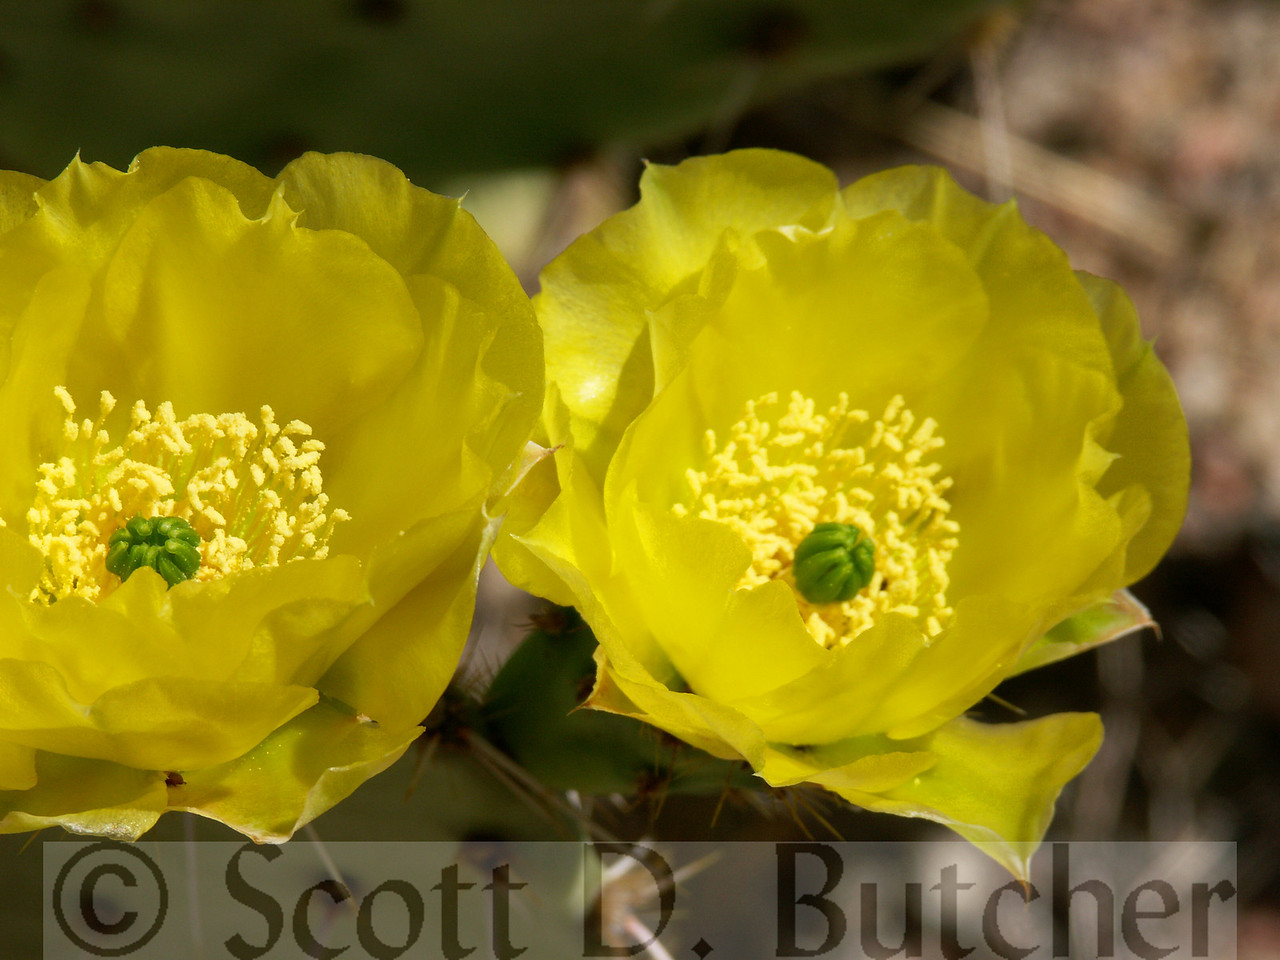 Blossom on a Prickly Pear Cactus